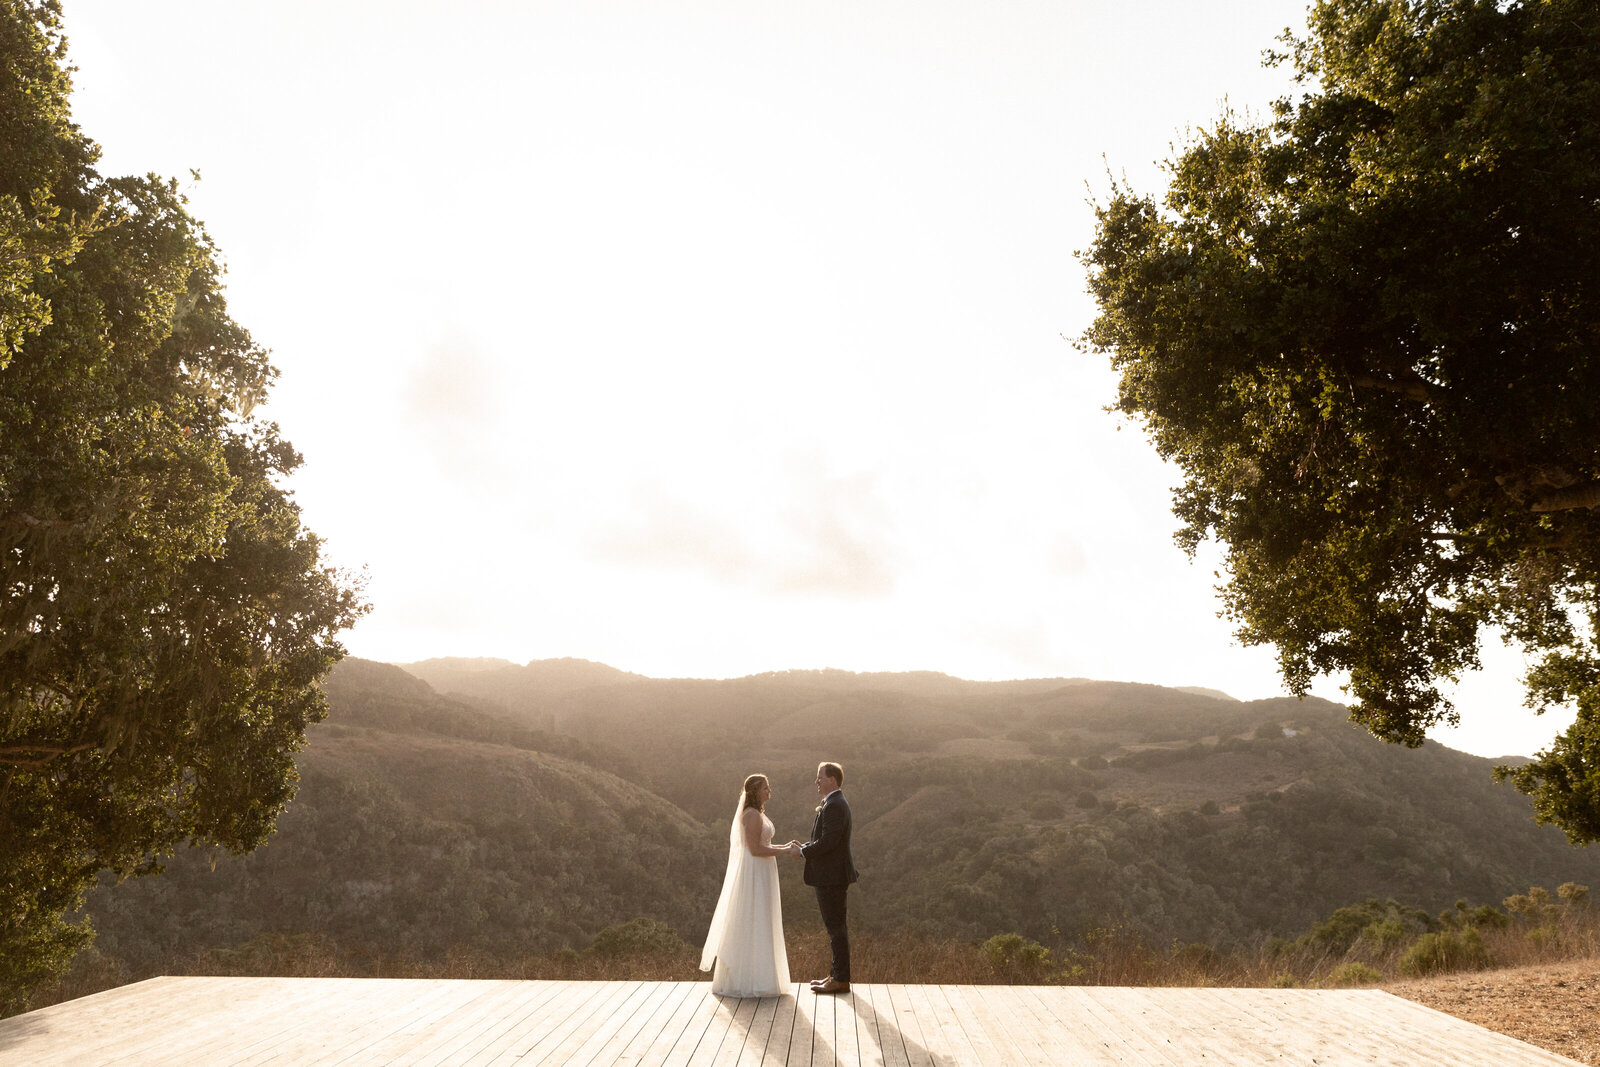 larissa-cleveland-elope-eleopement-intimate-wedding-photographer-san-francisco-napa-carmel-028